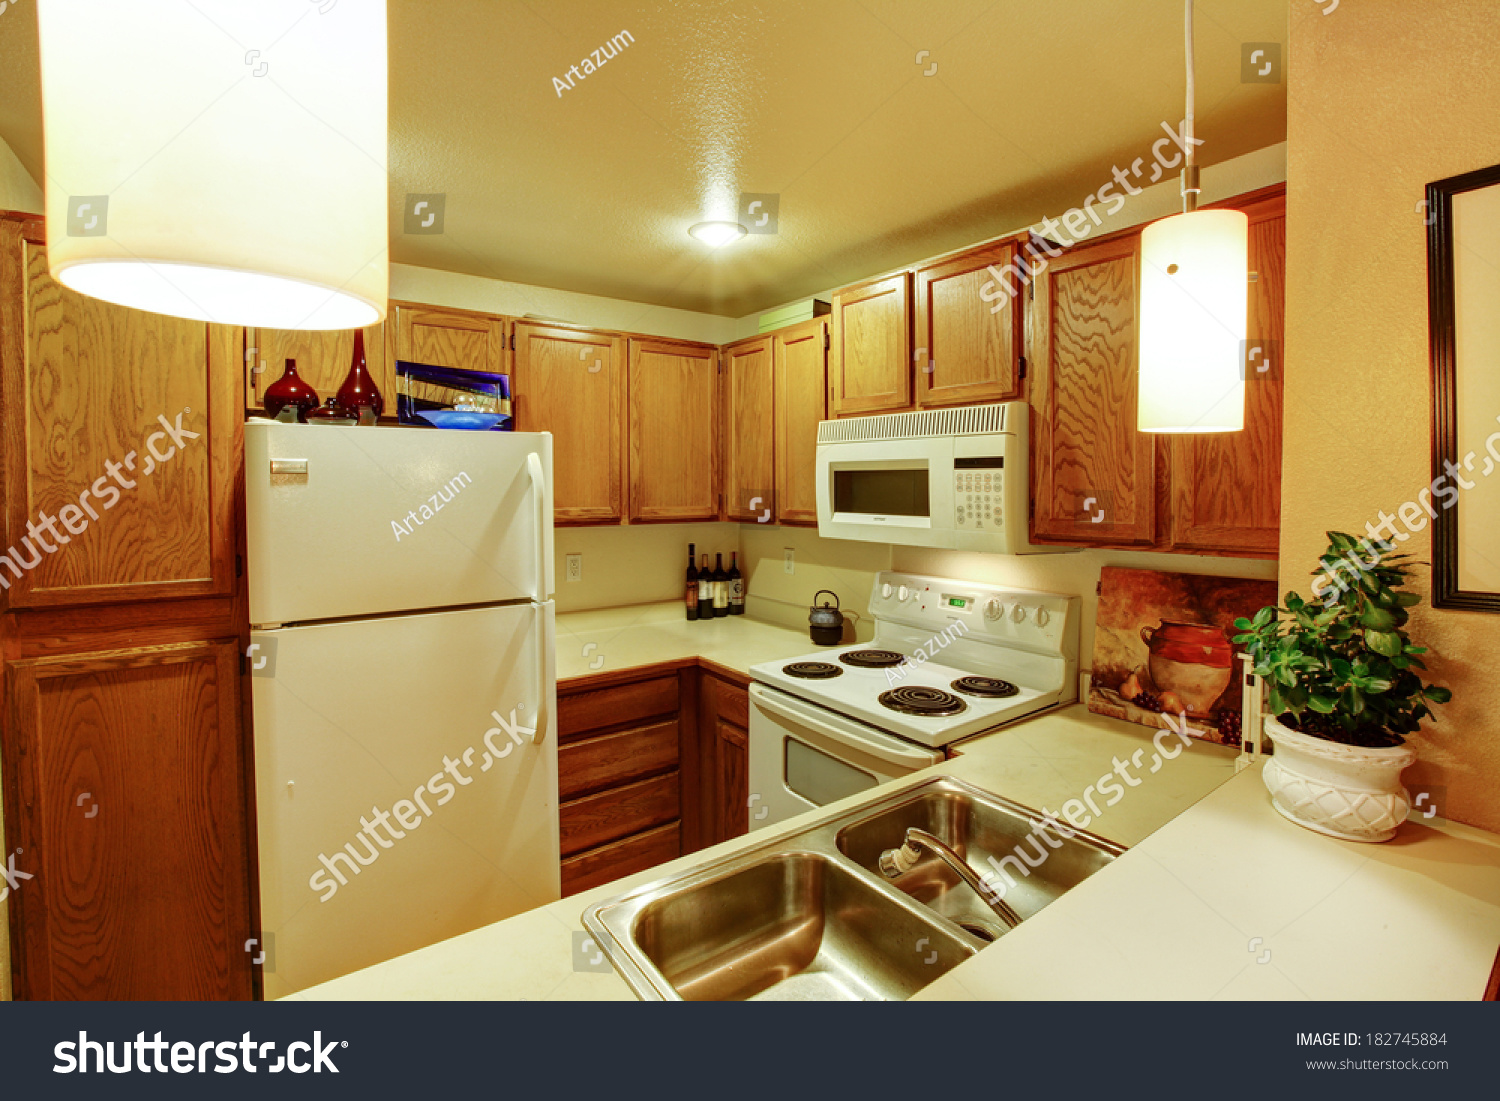 kitchen with appliances and a beautiful interior | EZ Canvas